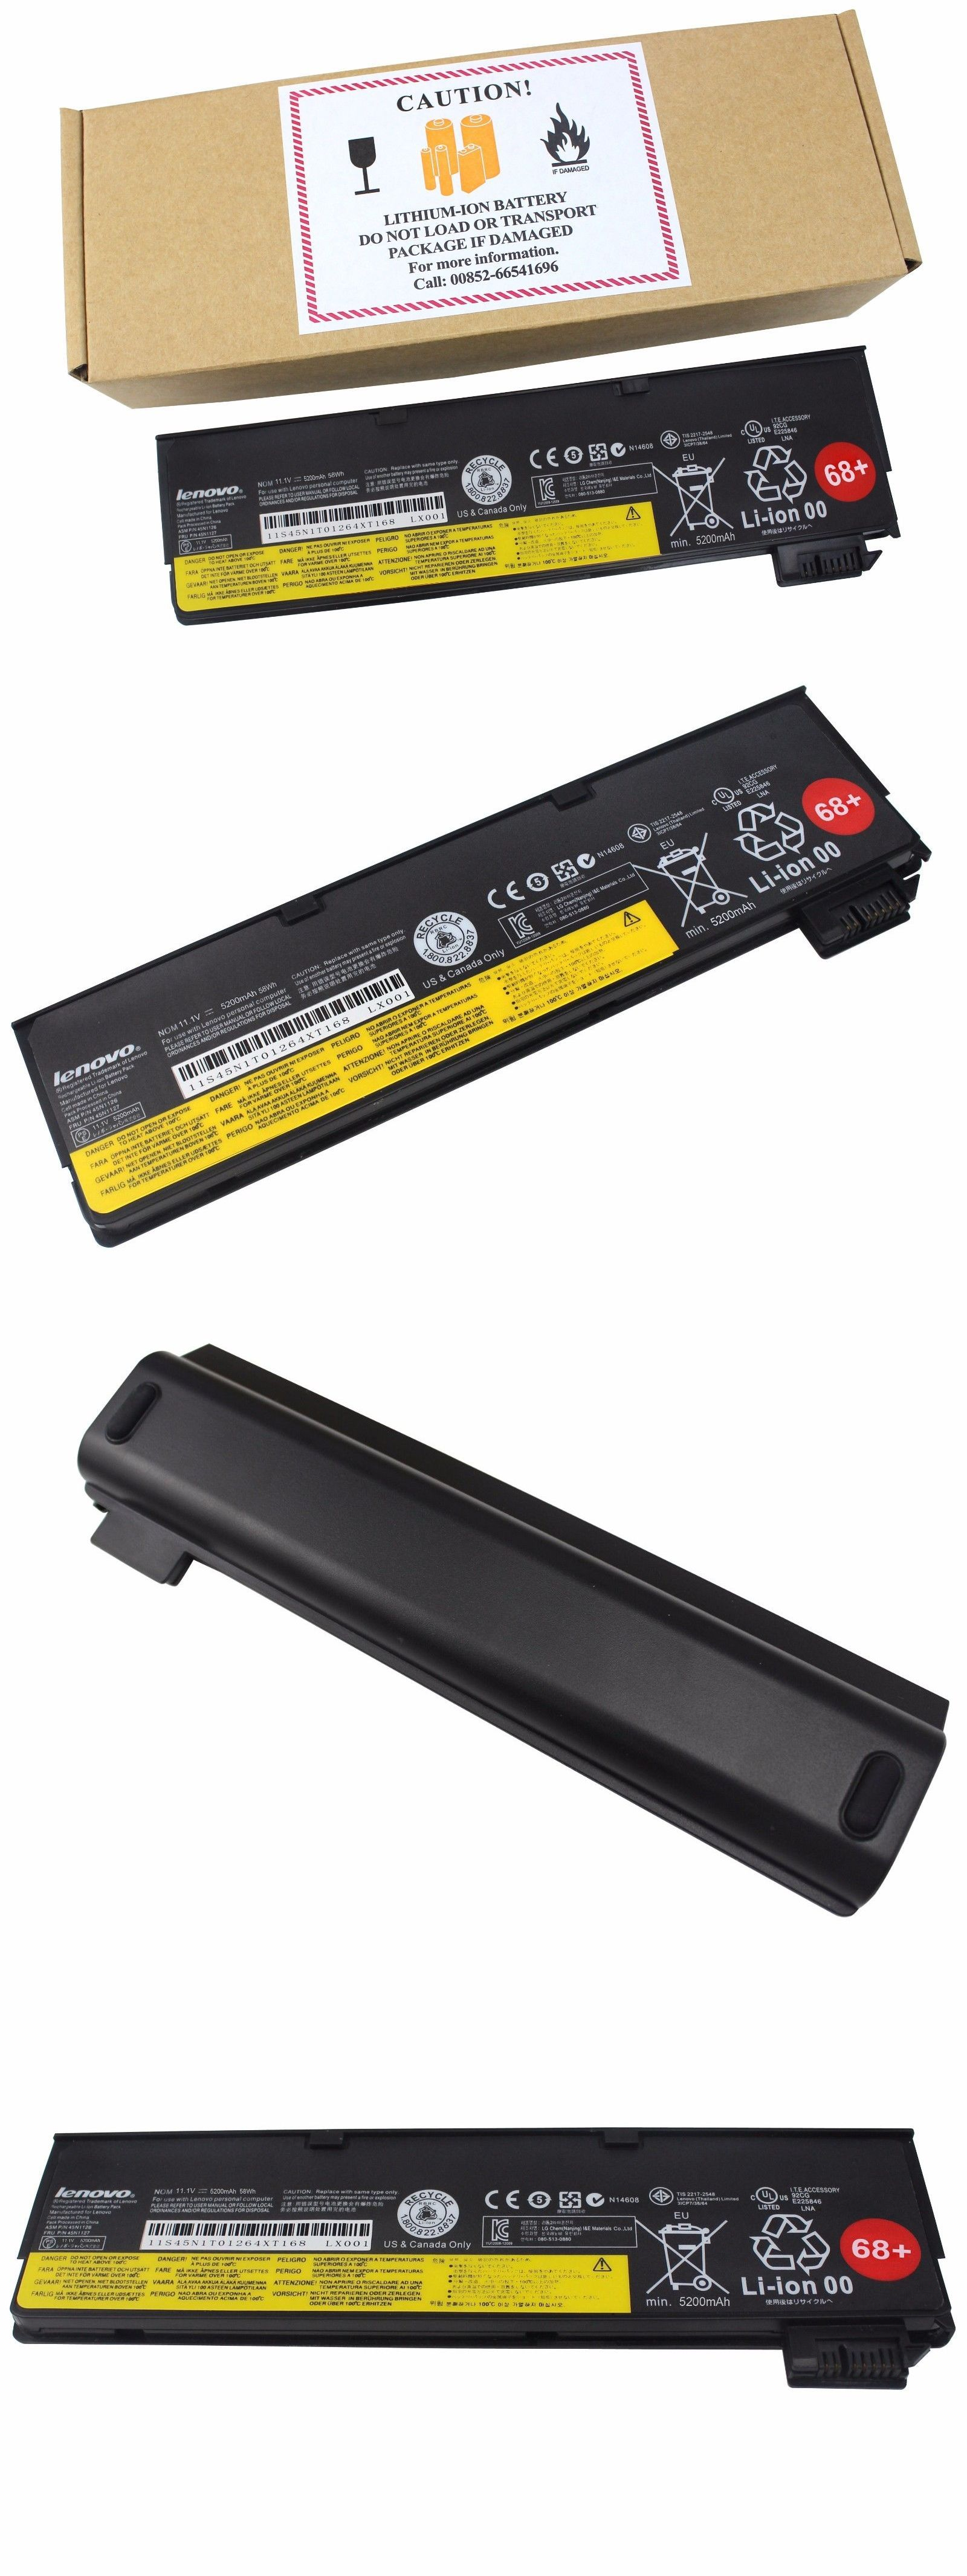 Laptop and Desktop Accessories 31530: Genuine 0C52862 Battery For